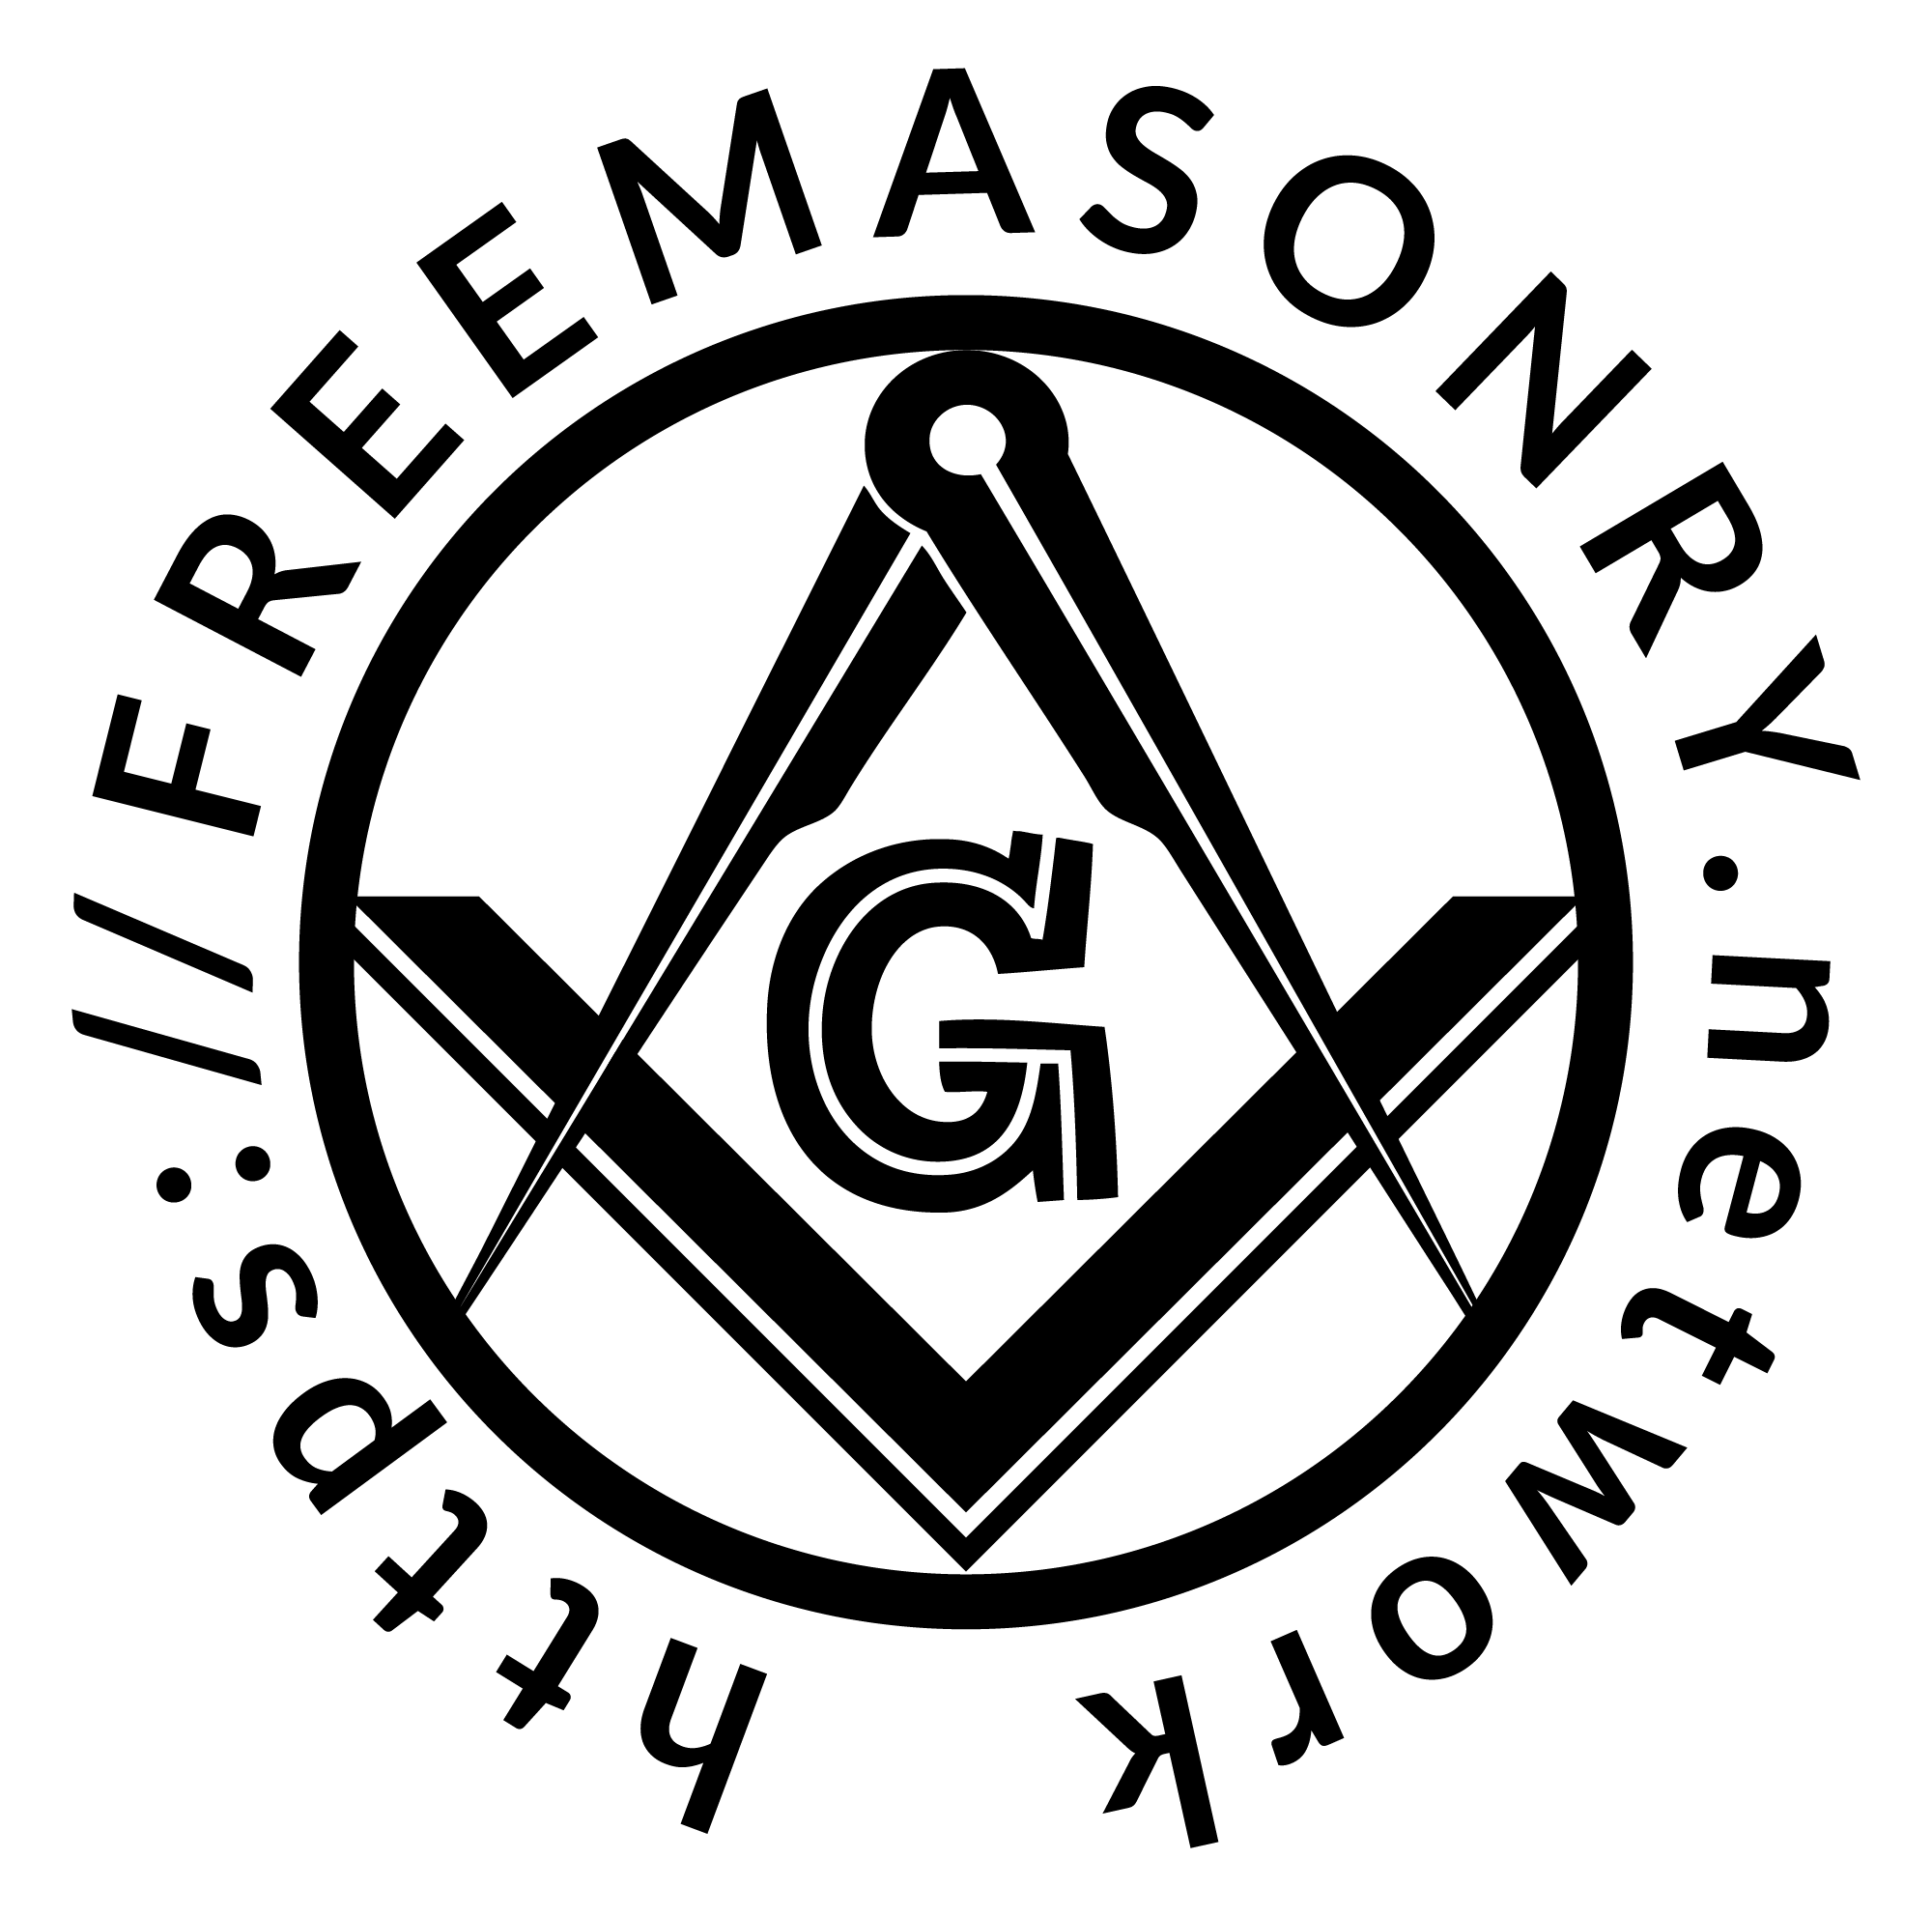 REQUIREMENTS OF BECOMING A MASON